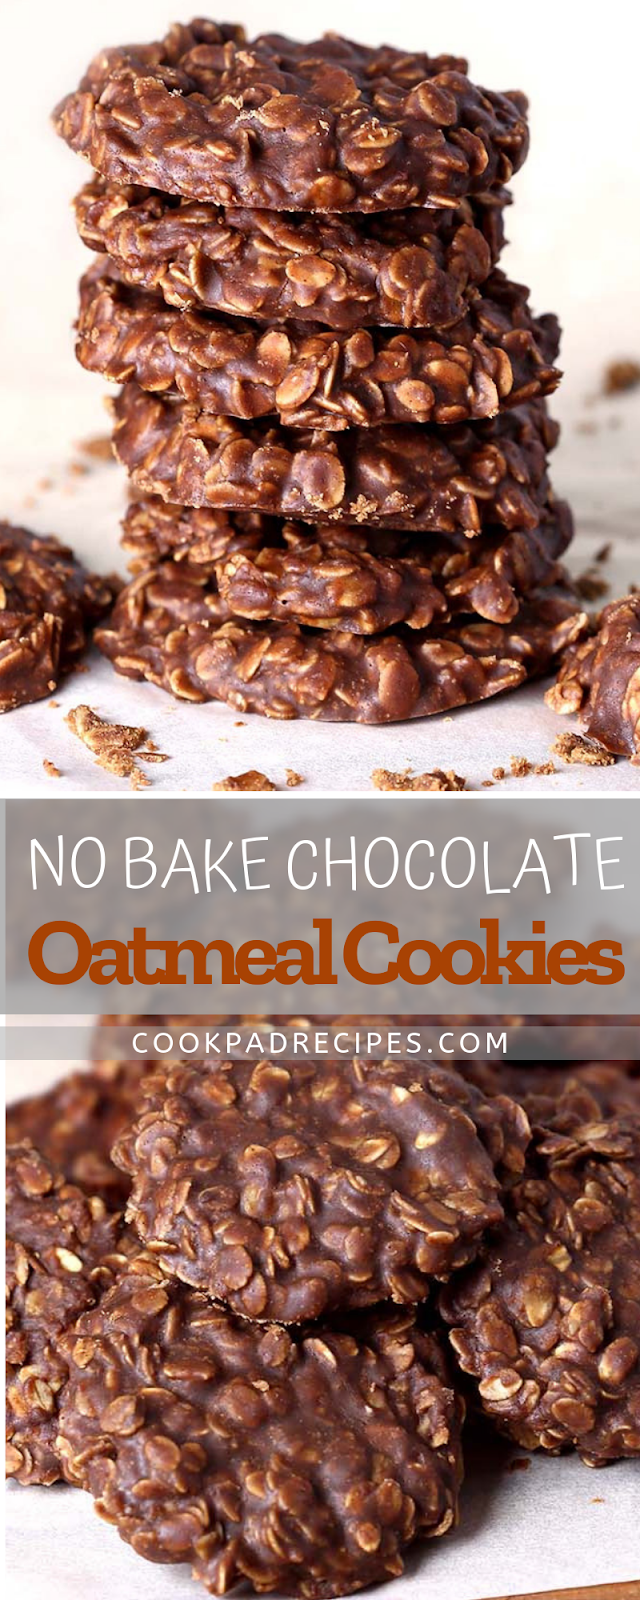 No Bаkе Chосоlаtе Oаtmеаl Cookies